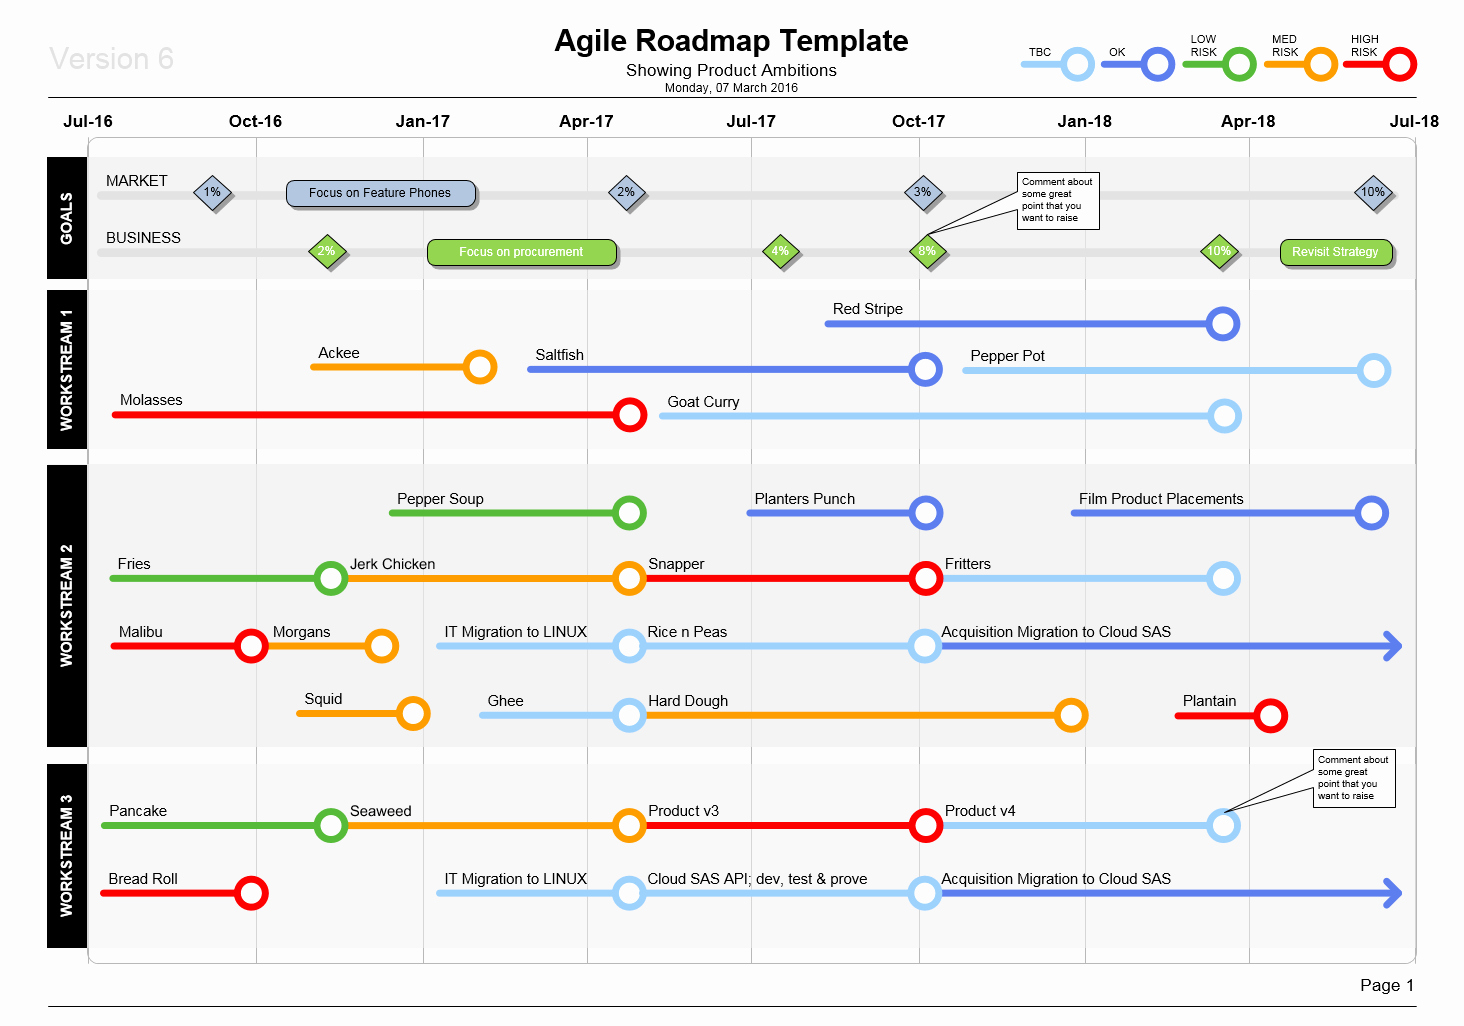 Roadmap Template Excel Free Download Fresh Visio Agile Roadmap Template Show Product Plans In Style